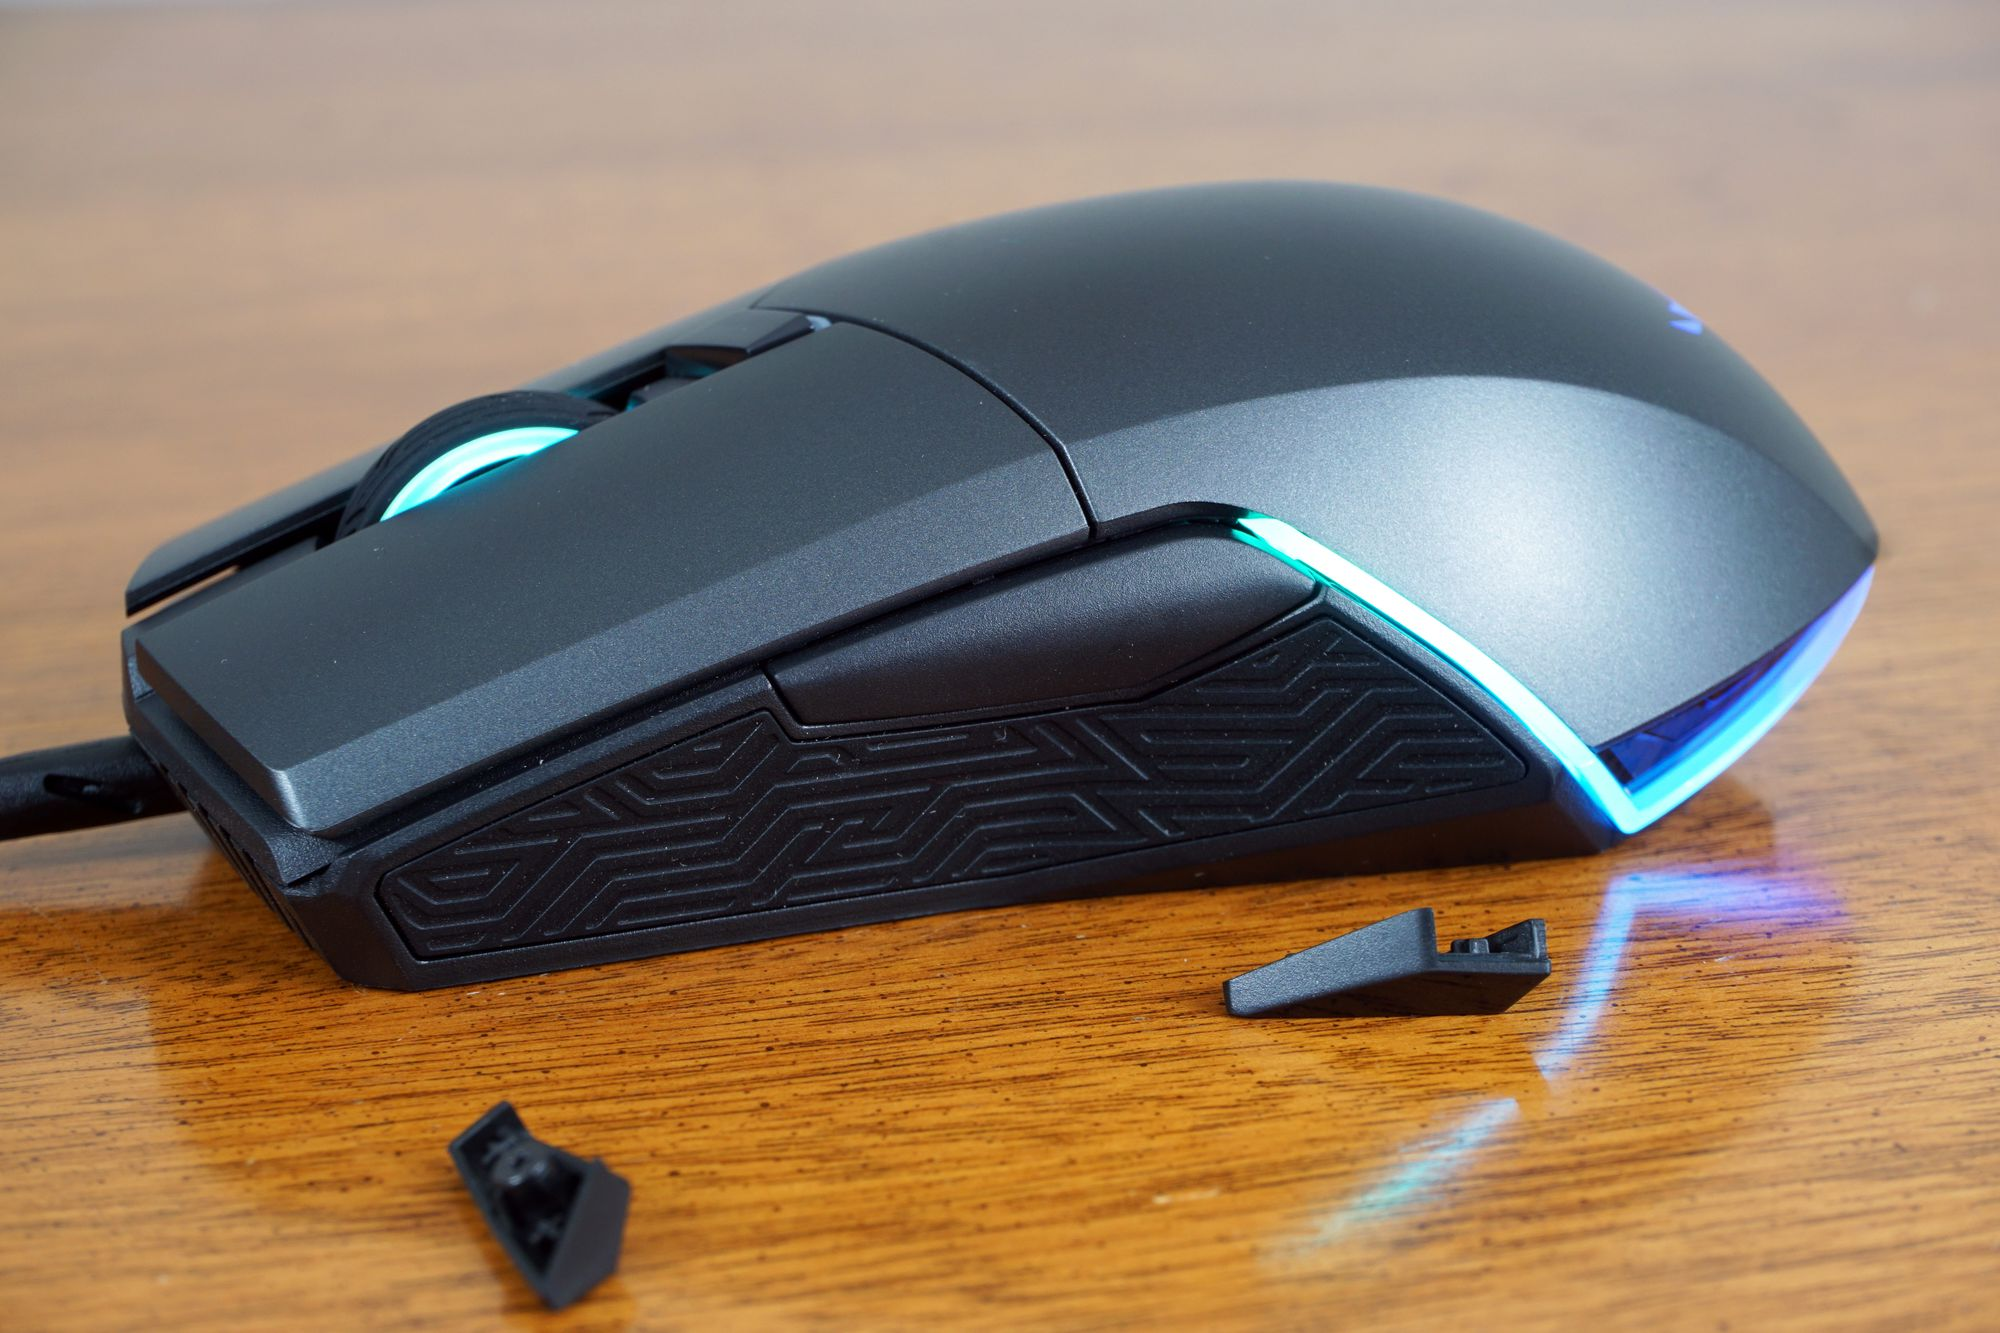 asus pugio gaming mouse 11_result